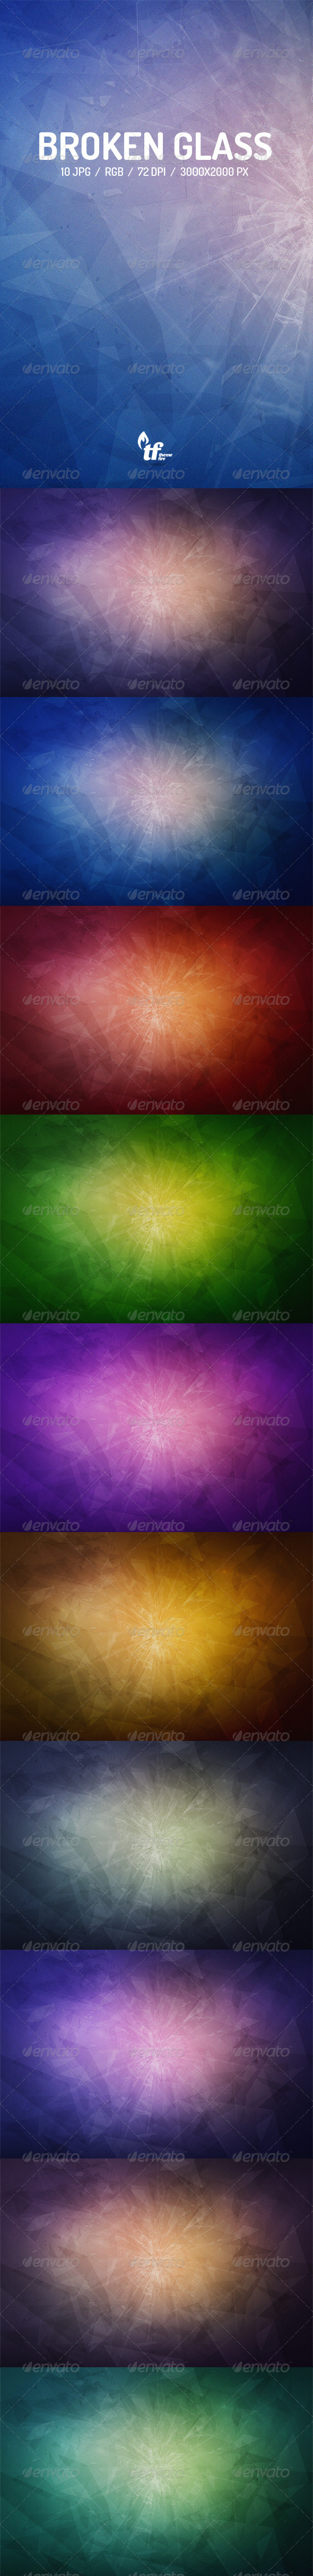 GraphicRiver 10 Broken Glass Backgrounds 8565750